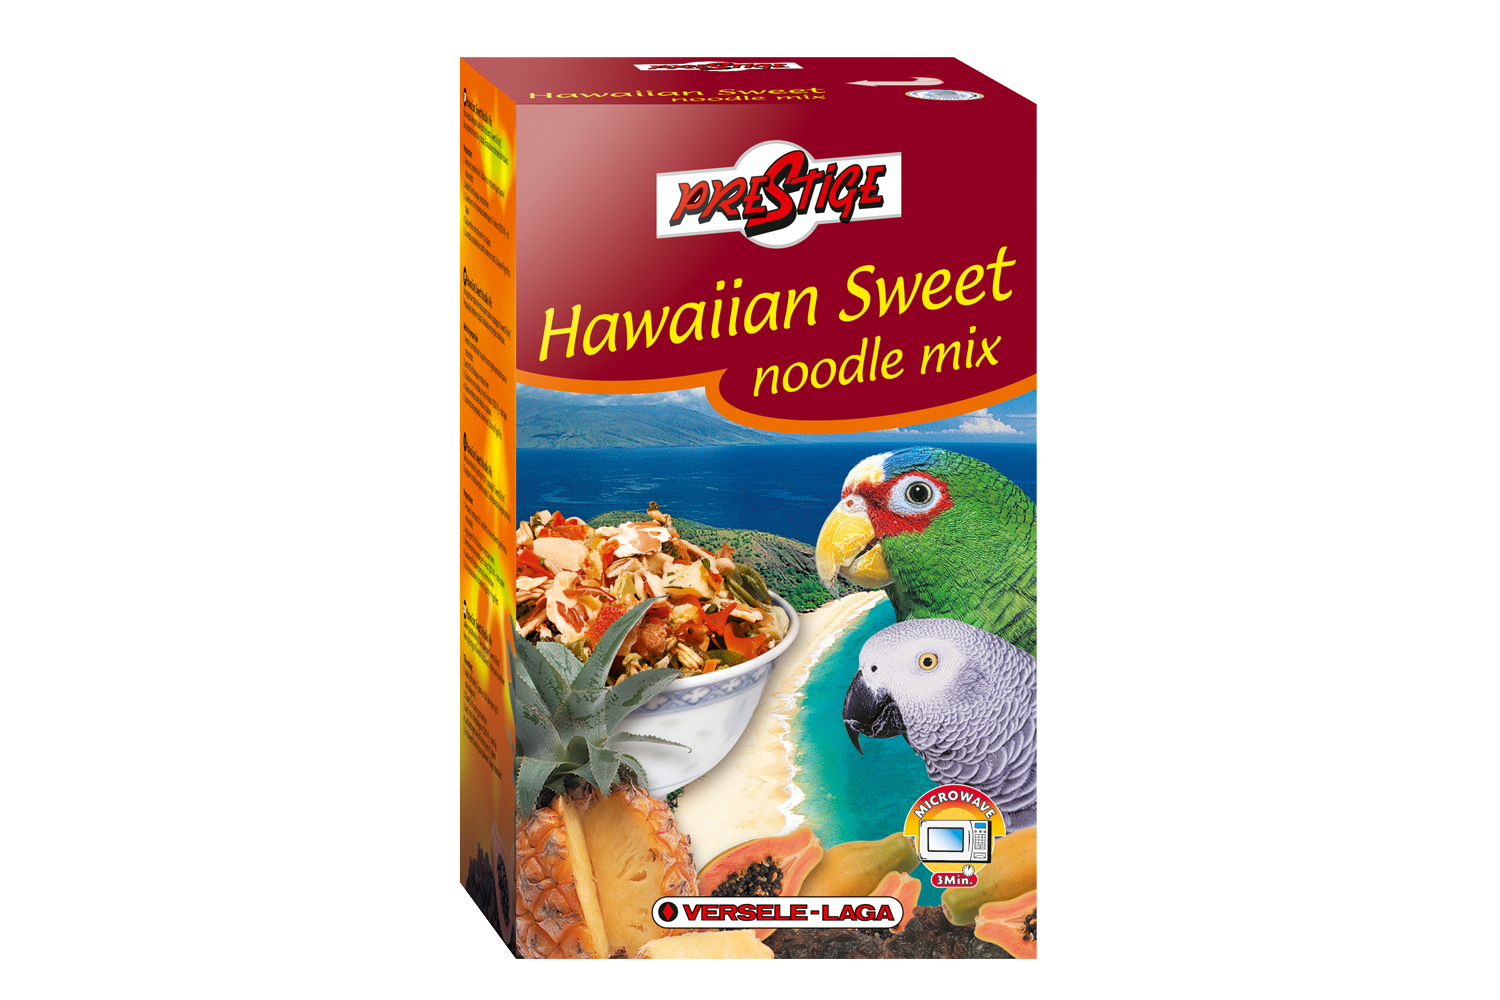 Prestige Hawaiian Sweet Noodle Mix